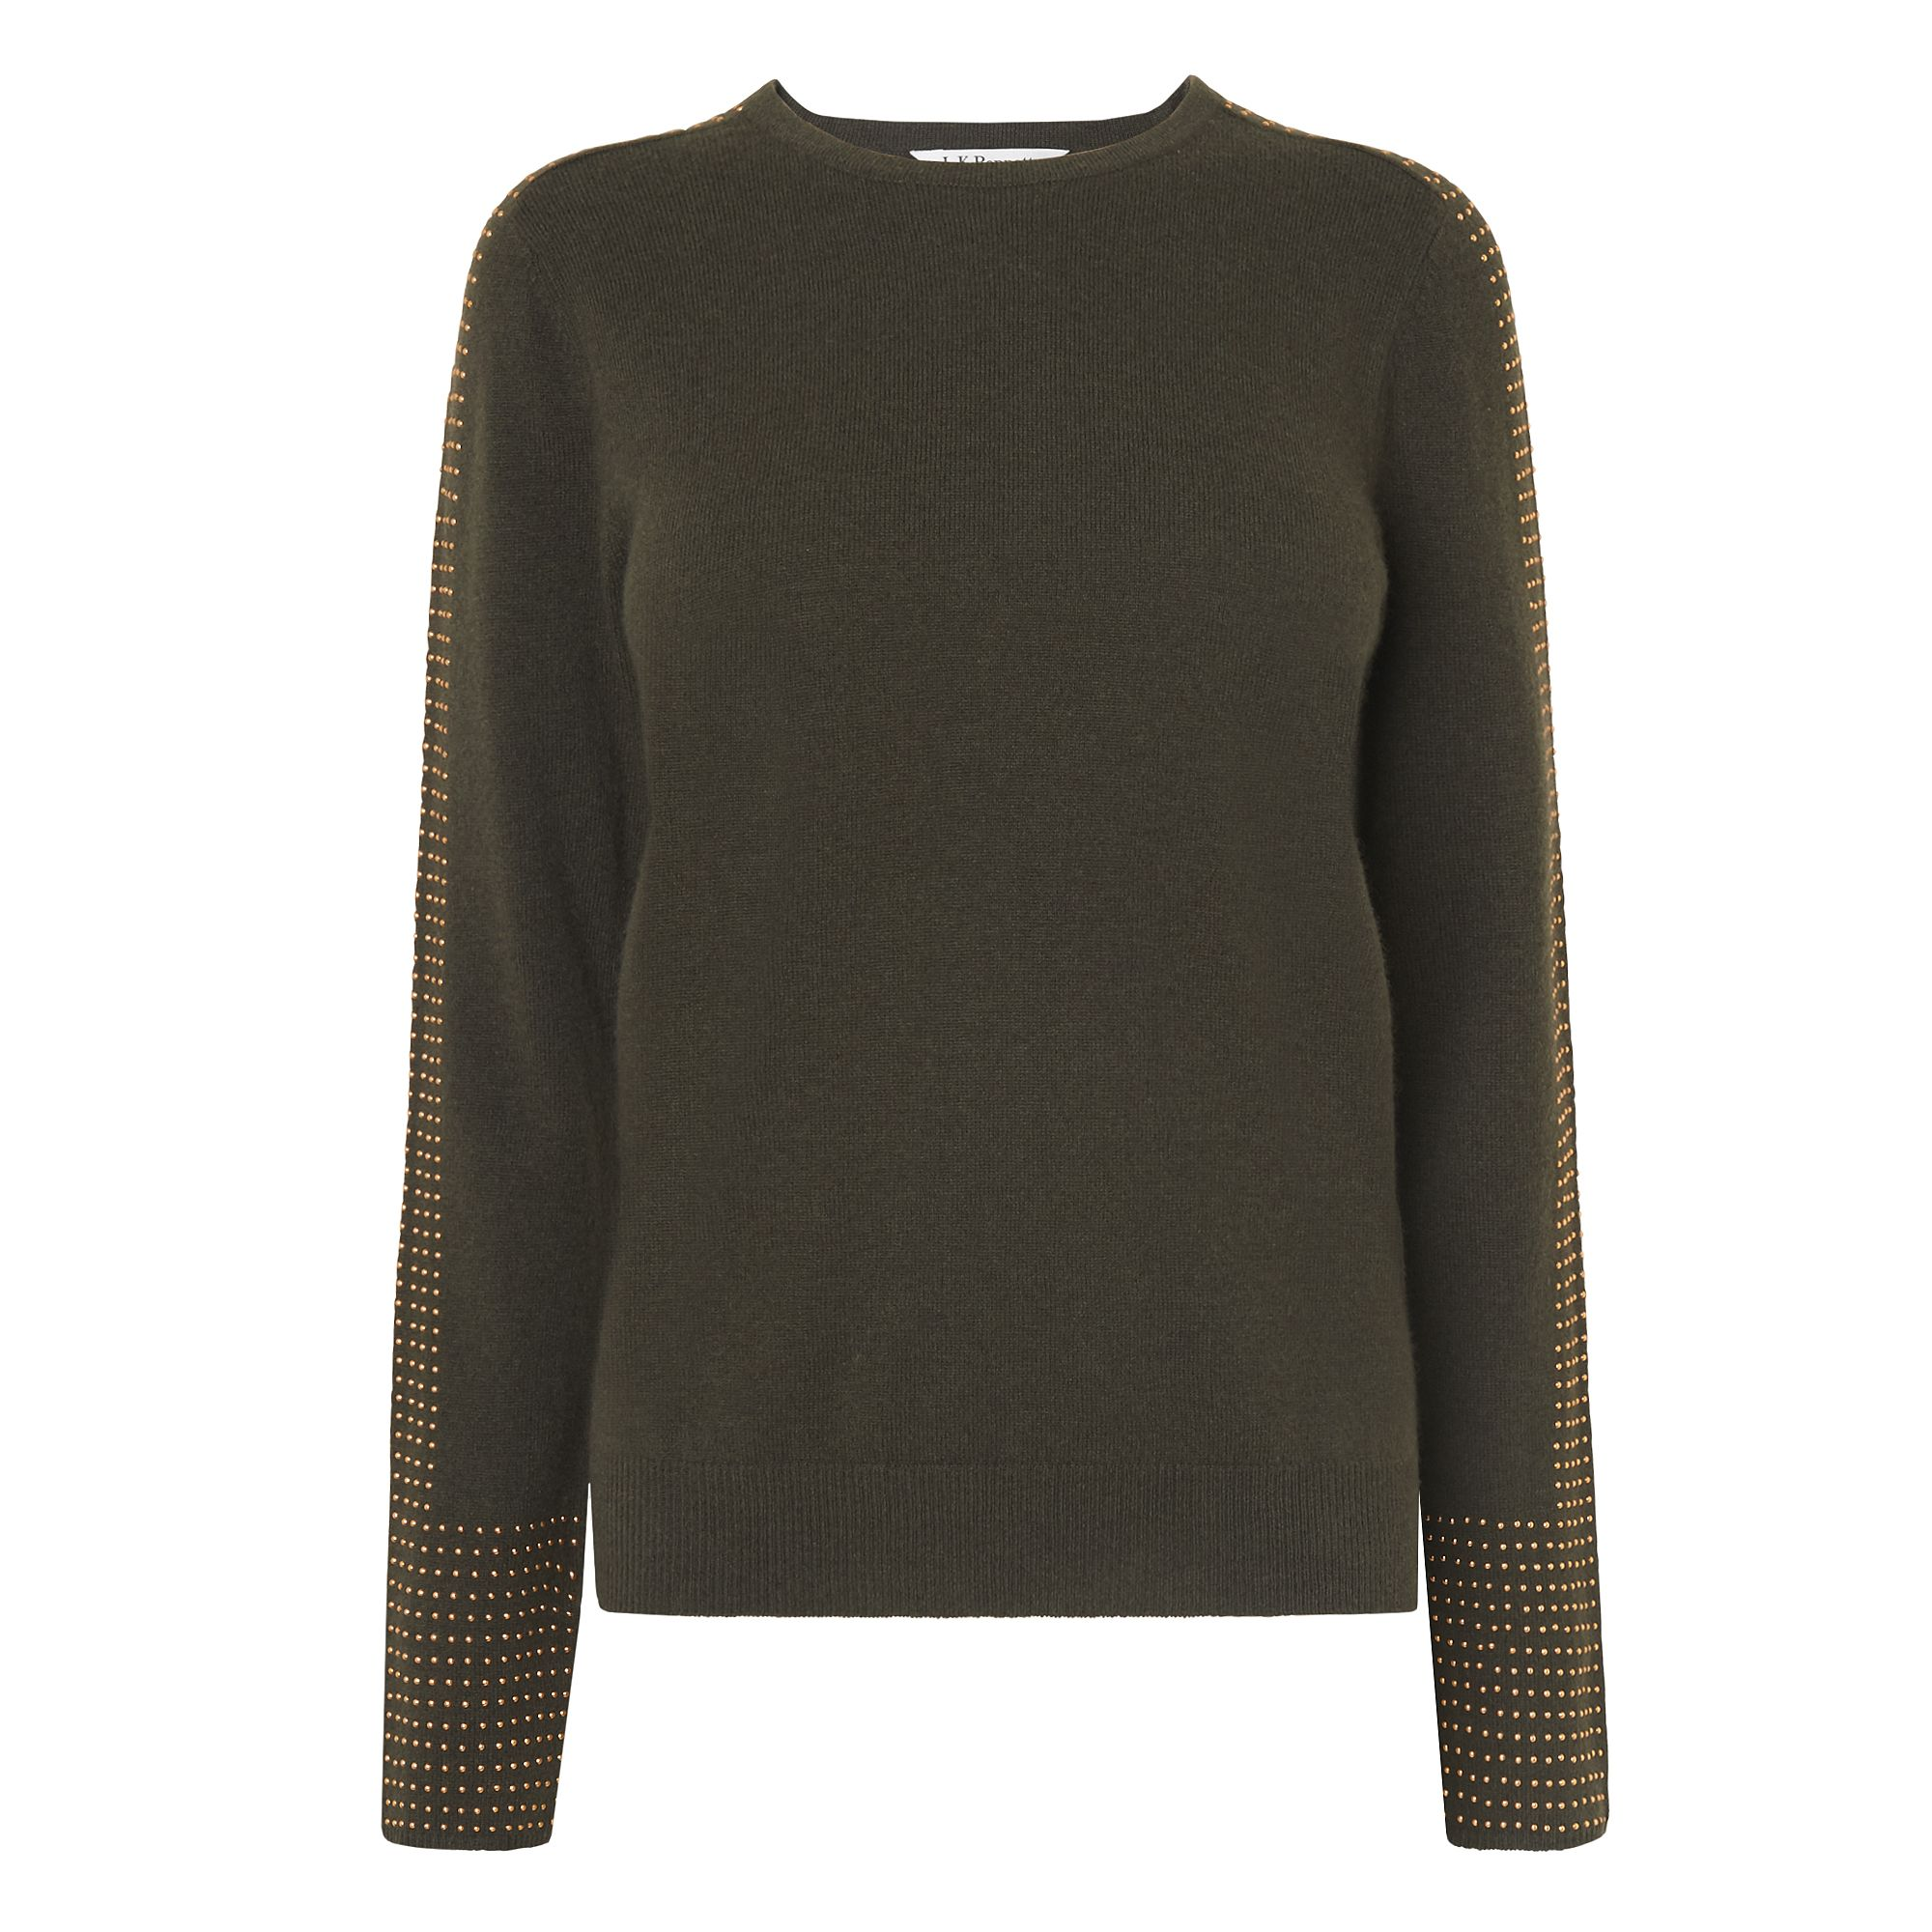 L.K.Bennett Adel Knitted Tops, Green